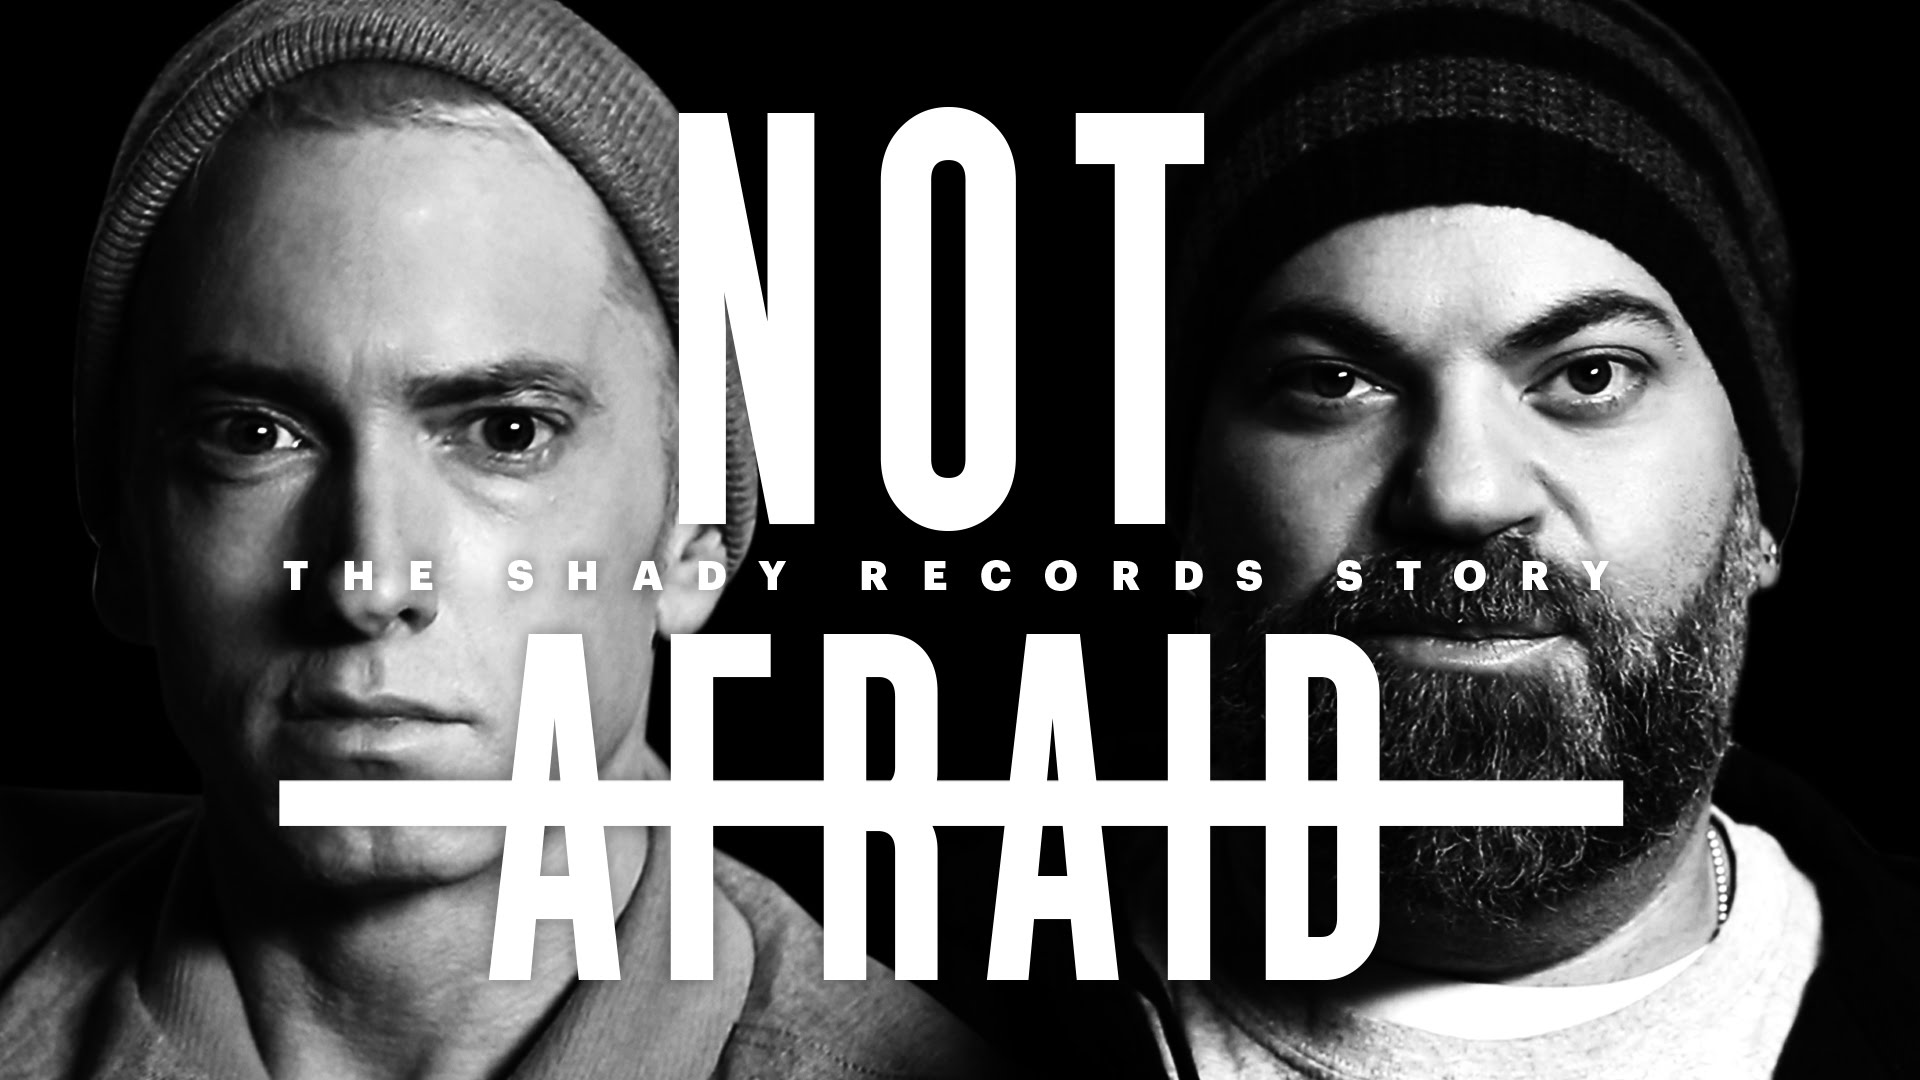 Documentario Not Afraid: The Shady Records Story - Traduzione Italiana Teaser